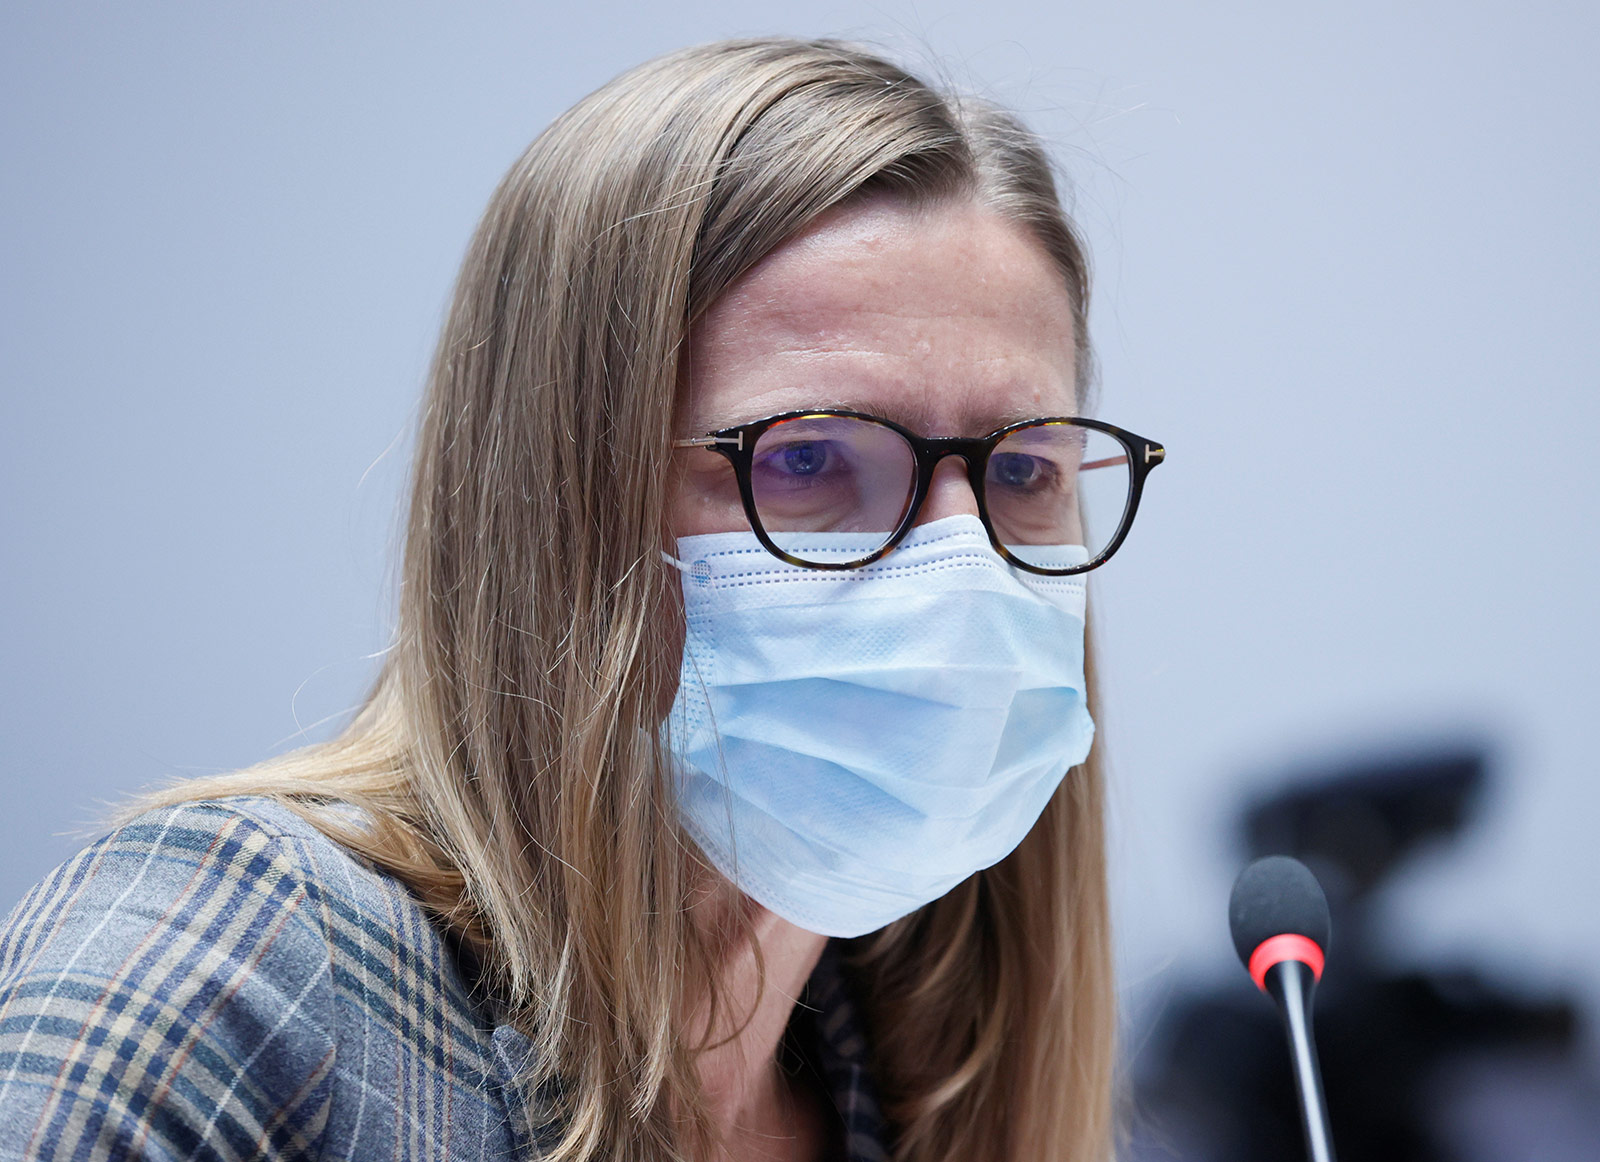 Virginie Masserey, Head of Infectious Diseases Control at Switzerland's Federal Office of Public Health, attends a coronavirus news conference in Bern, Switzerland, on December 4.